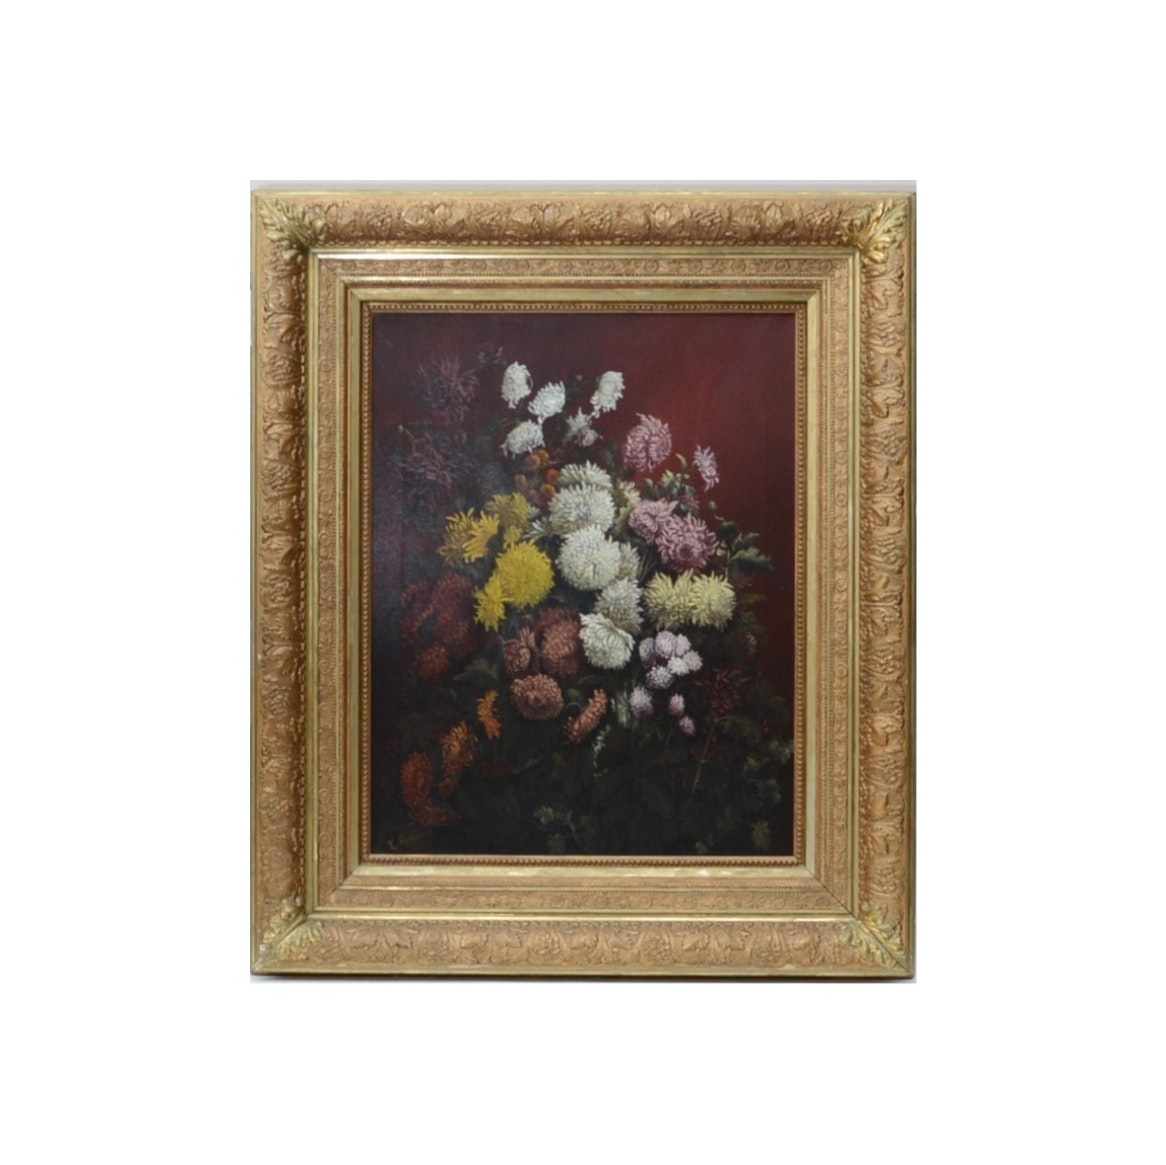 Antique E. Robinson Still Life Oil Painting on Canvas